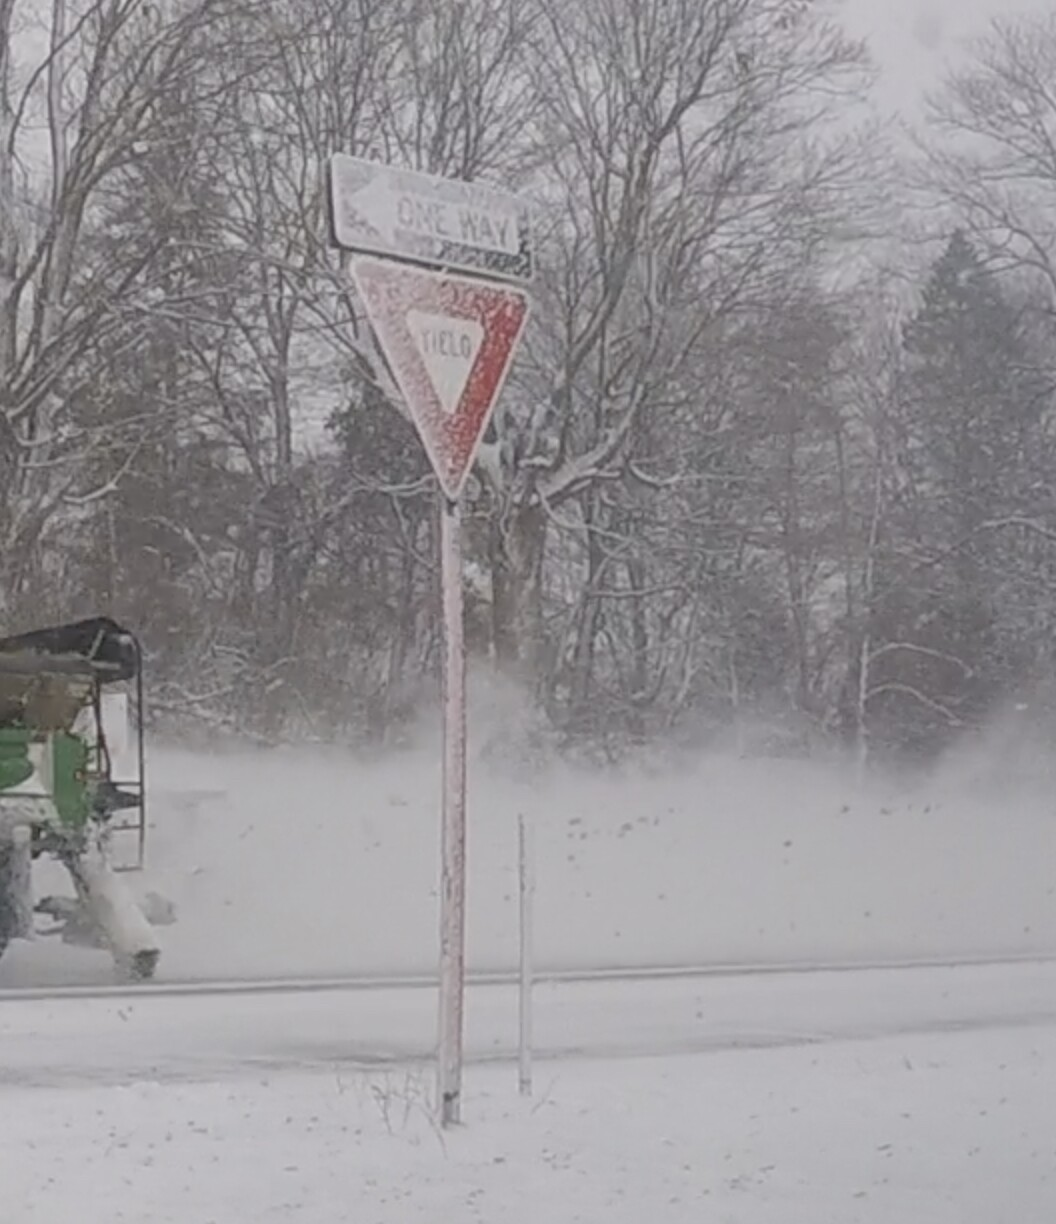 yield sign covered in snow.jpg